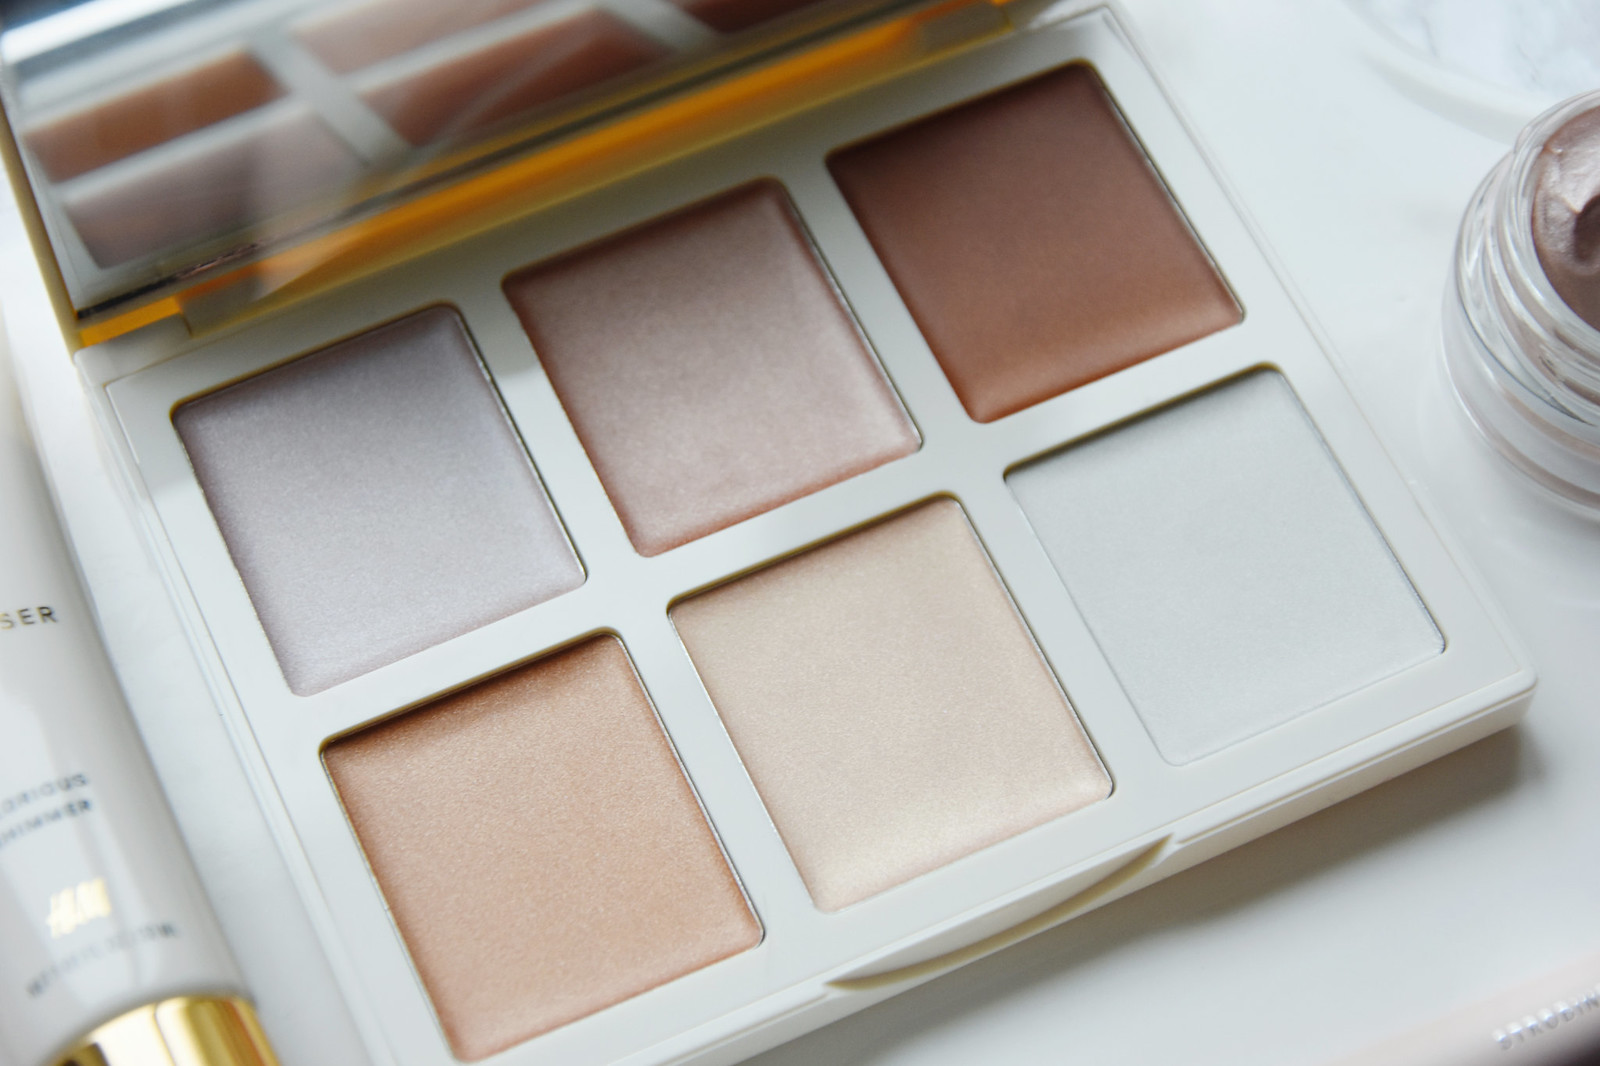 H&M Strobing palette review